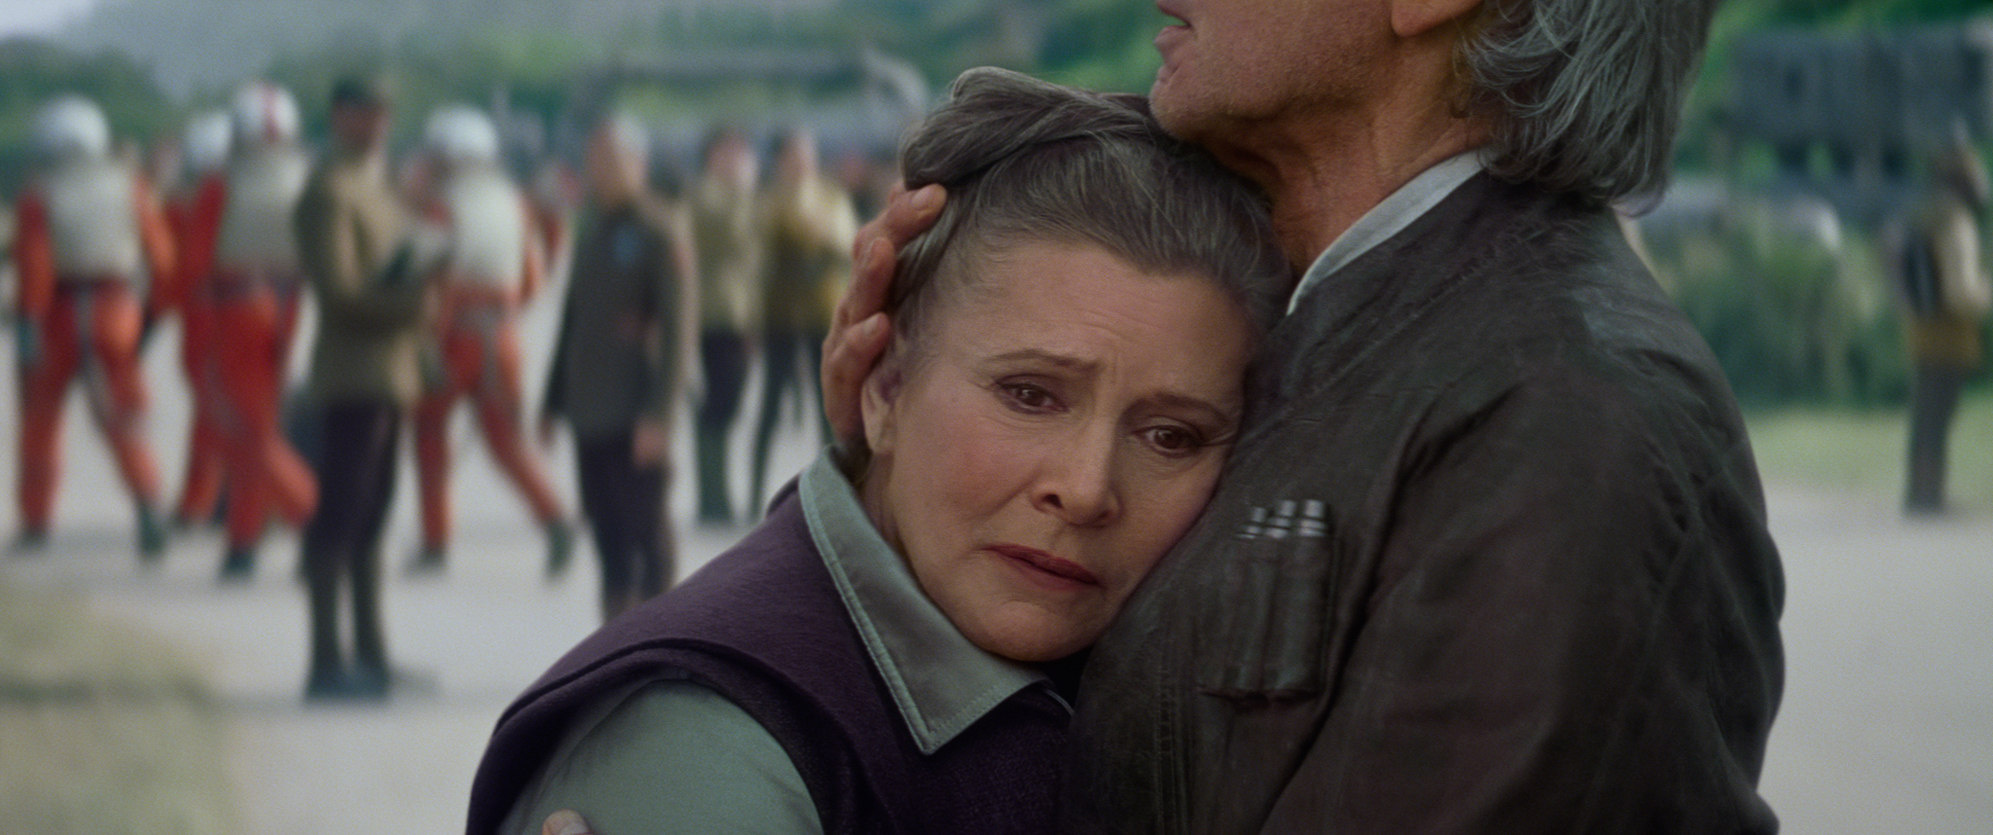 Yes Carrie Fisher Will Be In Star Wars Episode 9